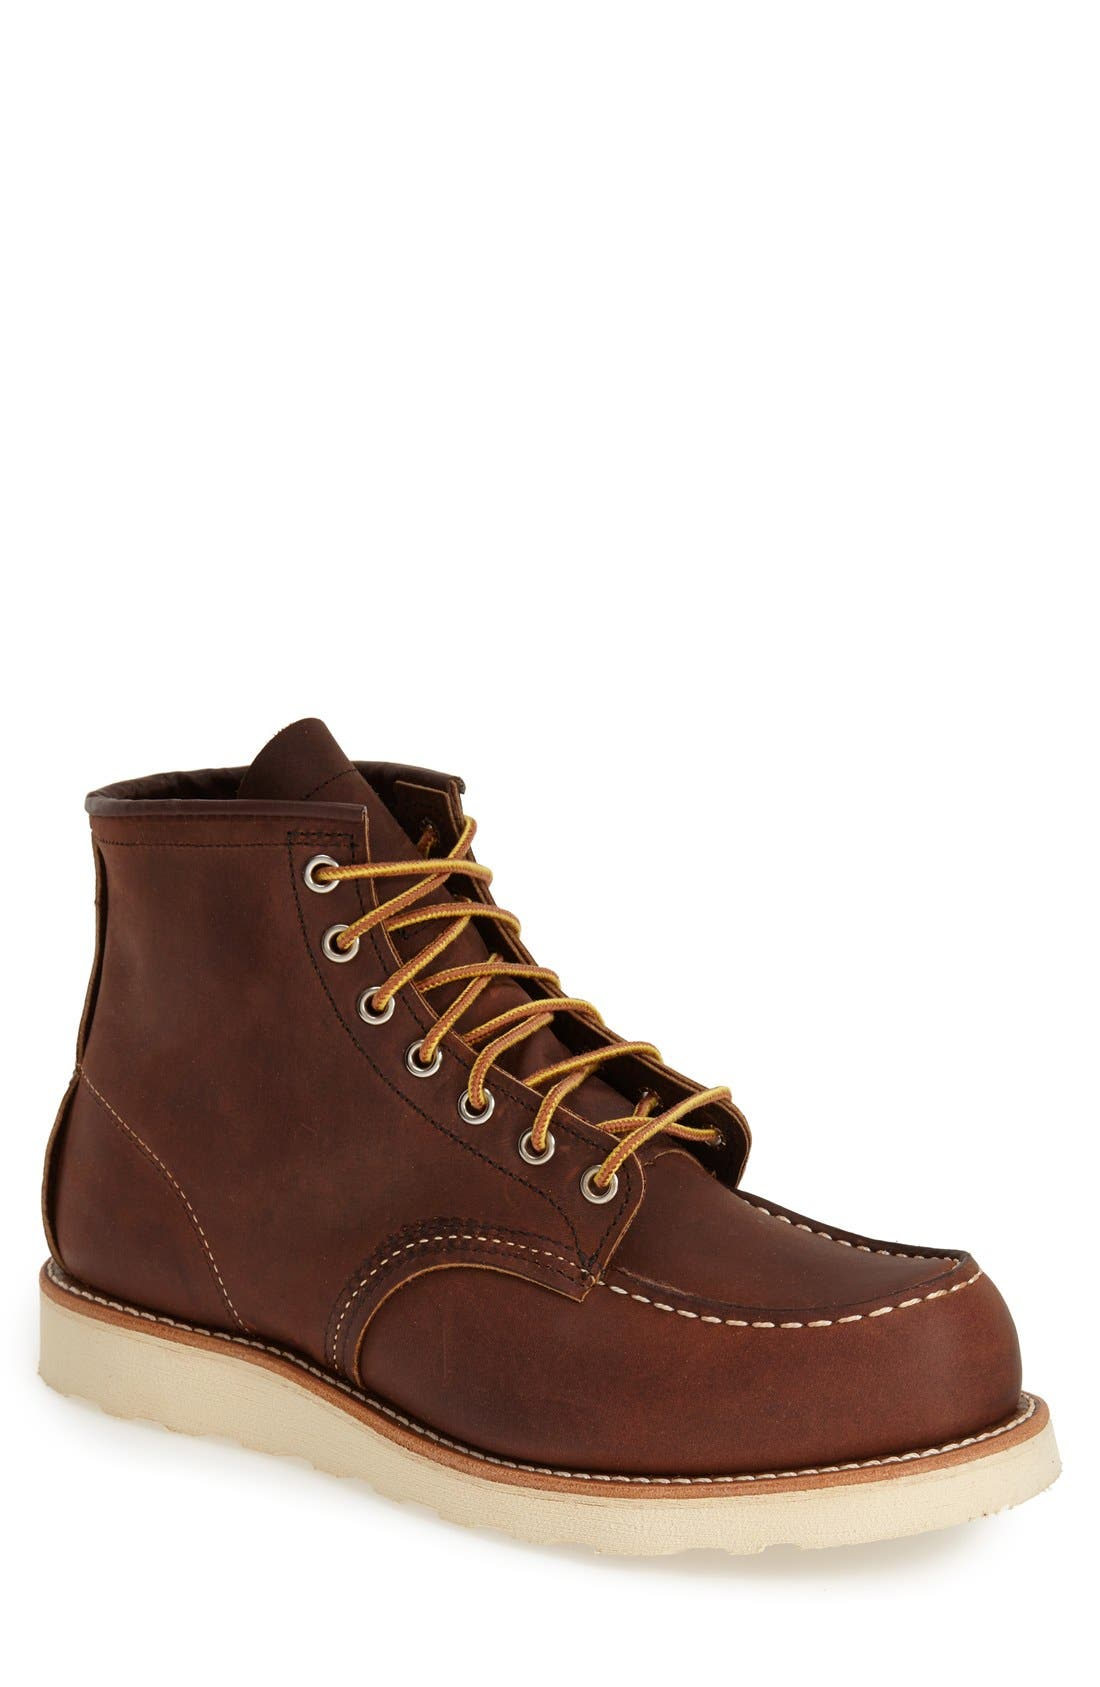 Alternate Image 1 Selected - Red Wing 6 Inch Moc Toe Boot (Nordstrom Exclusive) (Men)